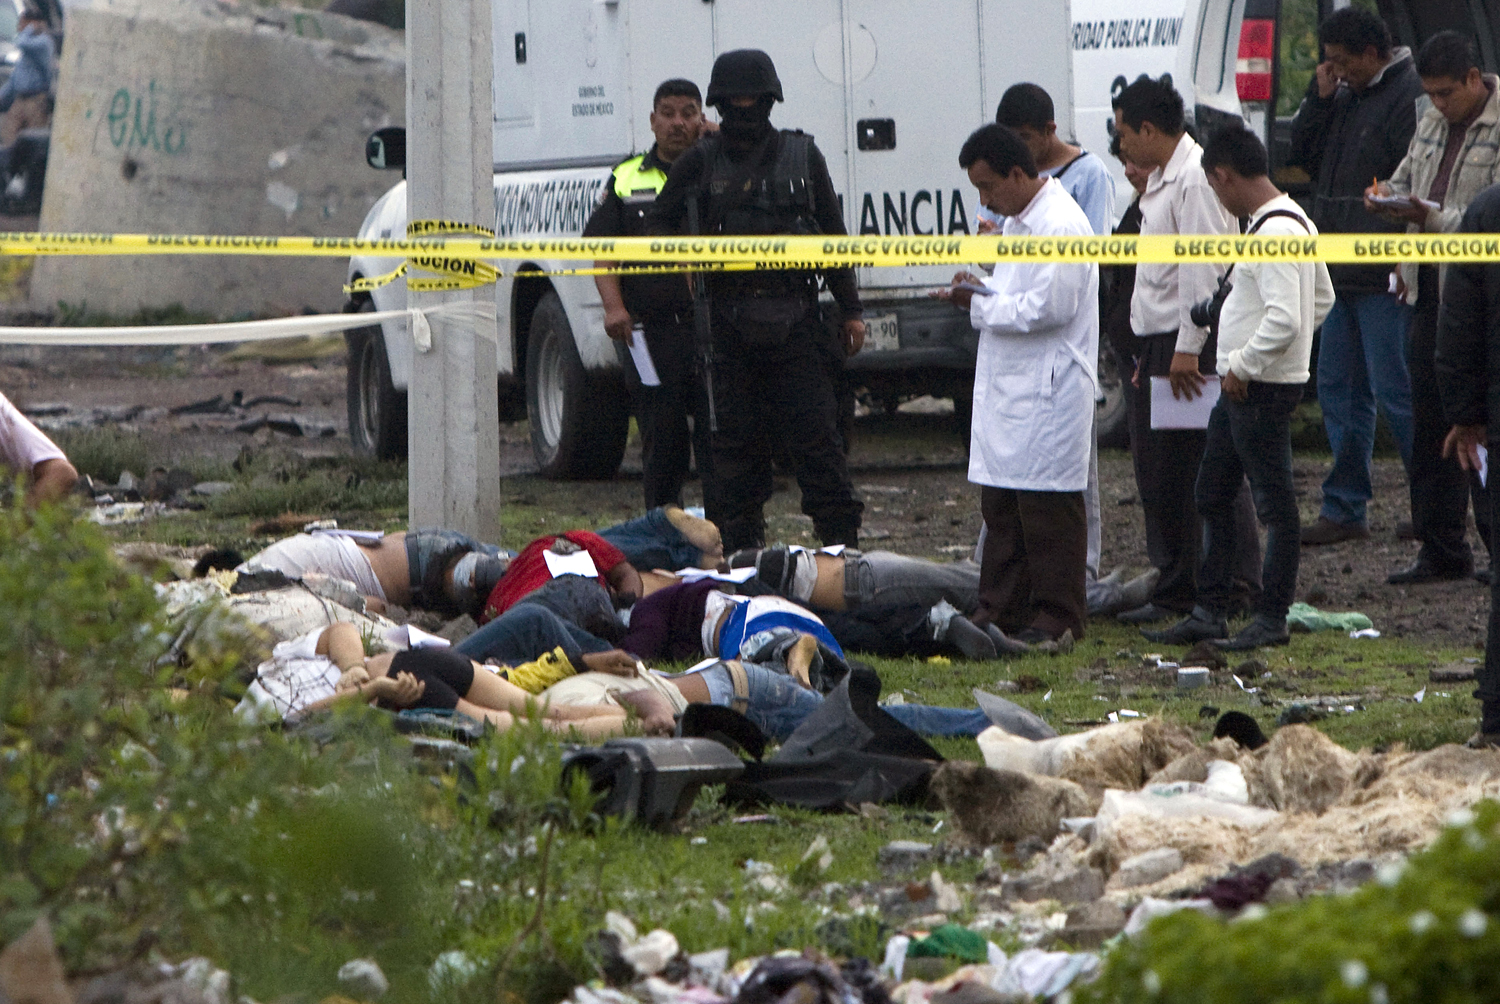 Mexico Cartel Killing Videos http://www.borderlandbeat.com/2011/07/mexico-killing-spree-blamed-on-zetas.html